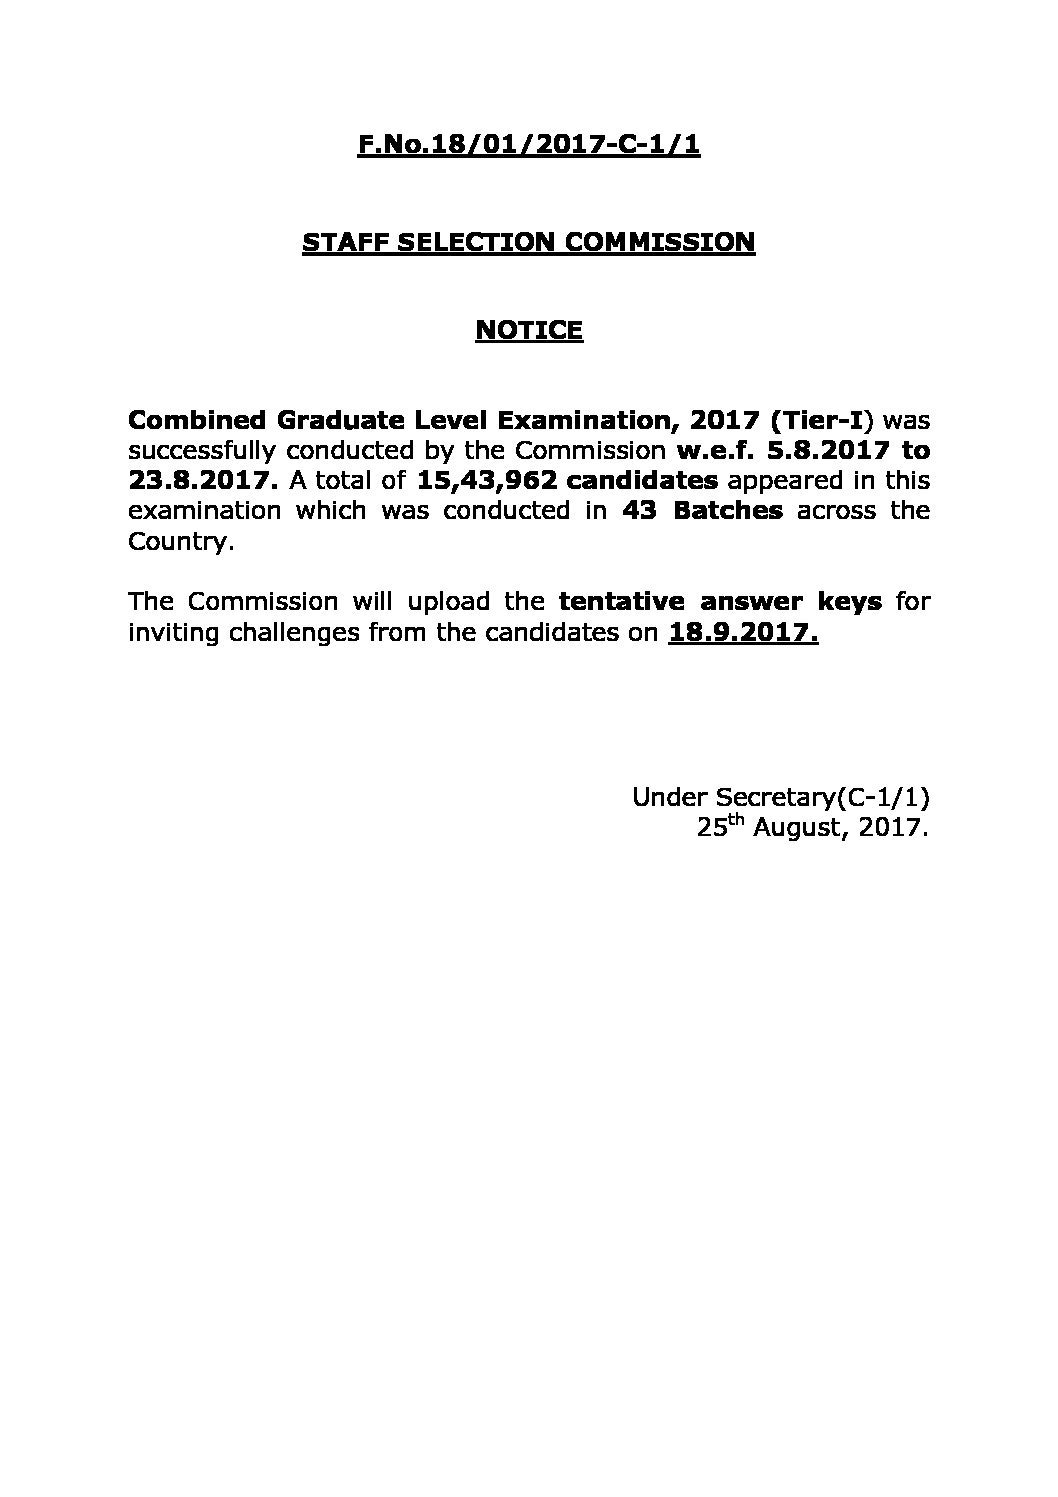 SSC CGL 2017 ANSWER KEY WILL BE PUBLISHED ON 18 SEP 2017